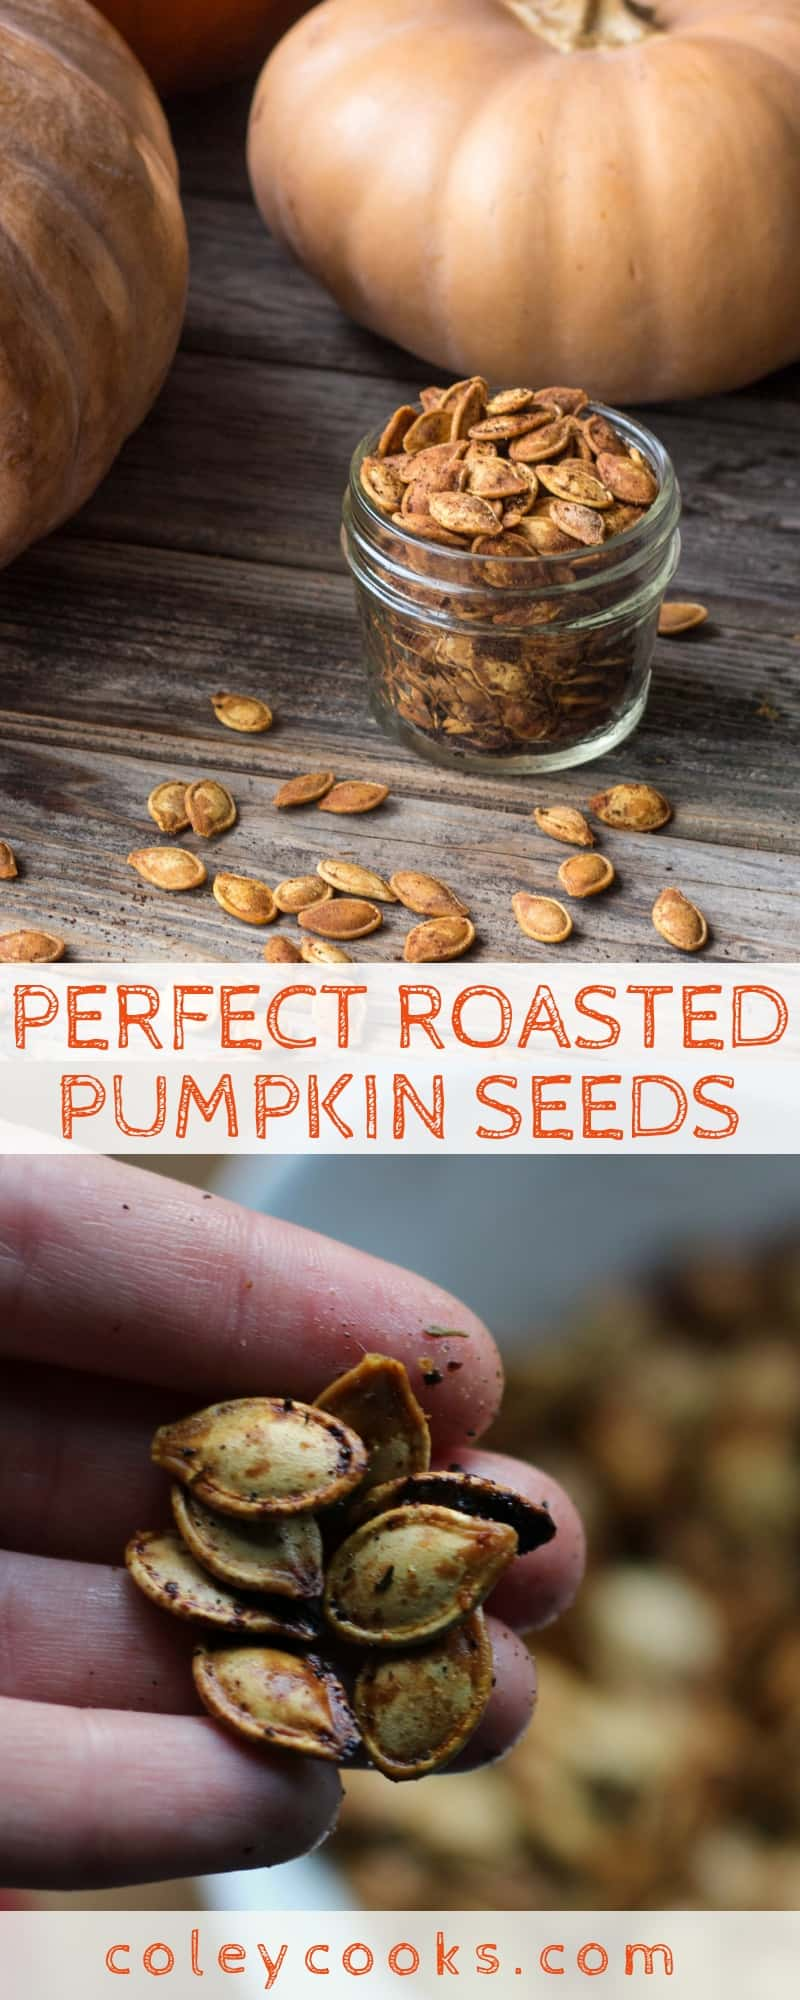 PERFECT ROASTED PUMPKIN SEEDS | This foolproof way for roasting pumpkin seeds produces the crunchiest, best pumpkin seeds ever! #pumpkin #pumpkinseeds #pumpkincarving #recipe #method #technique #blanching #seeds | ColeyCooks.com